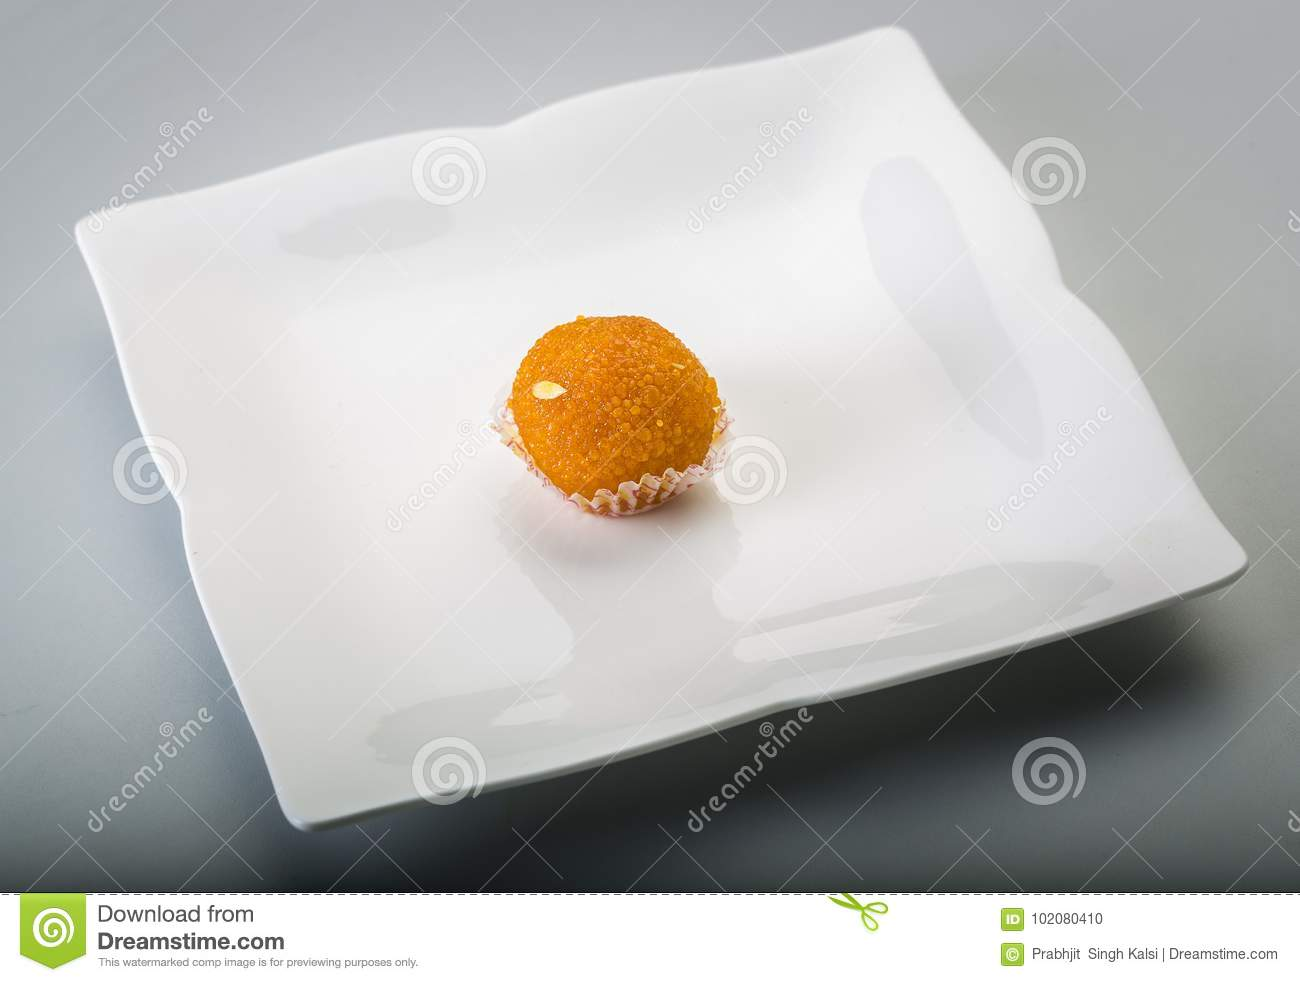 Laddu or laddoo or motichoor laddu